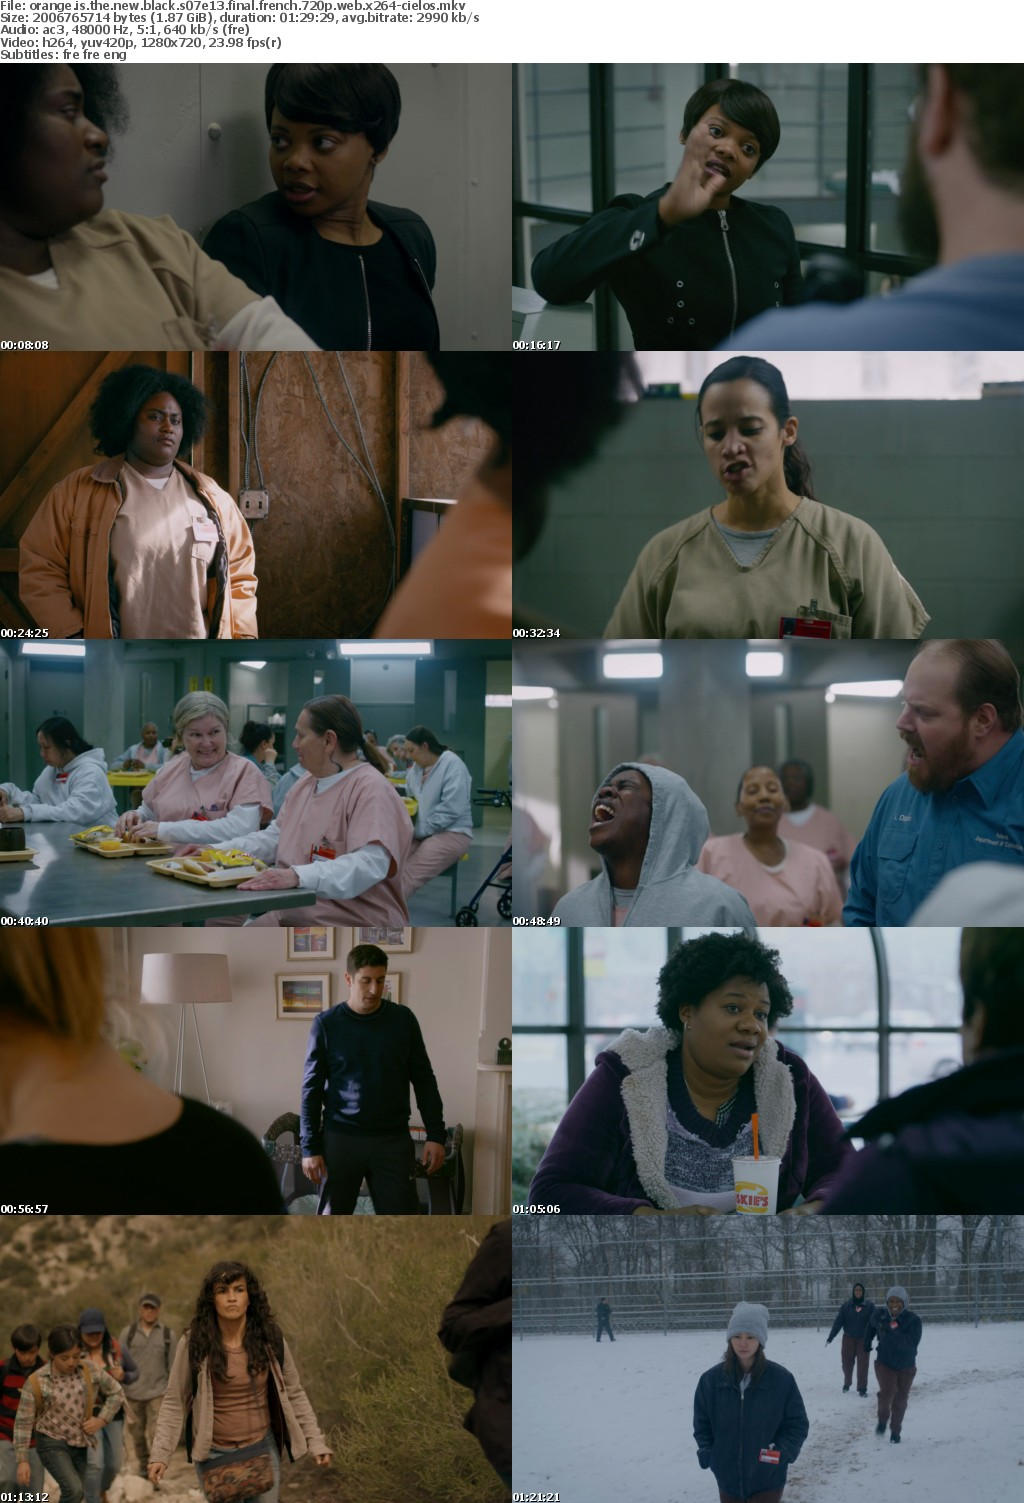 Orange Is the New Black S07E13 FiNAL FRENCH 720p WEB x264-CiELOS